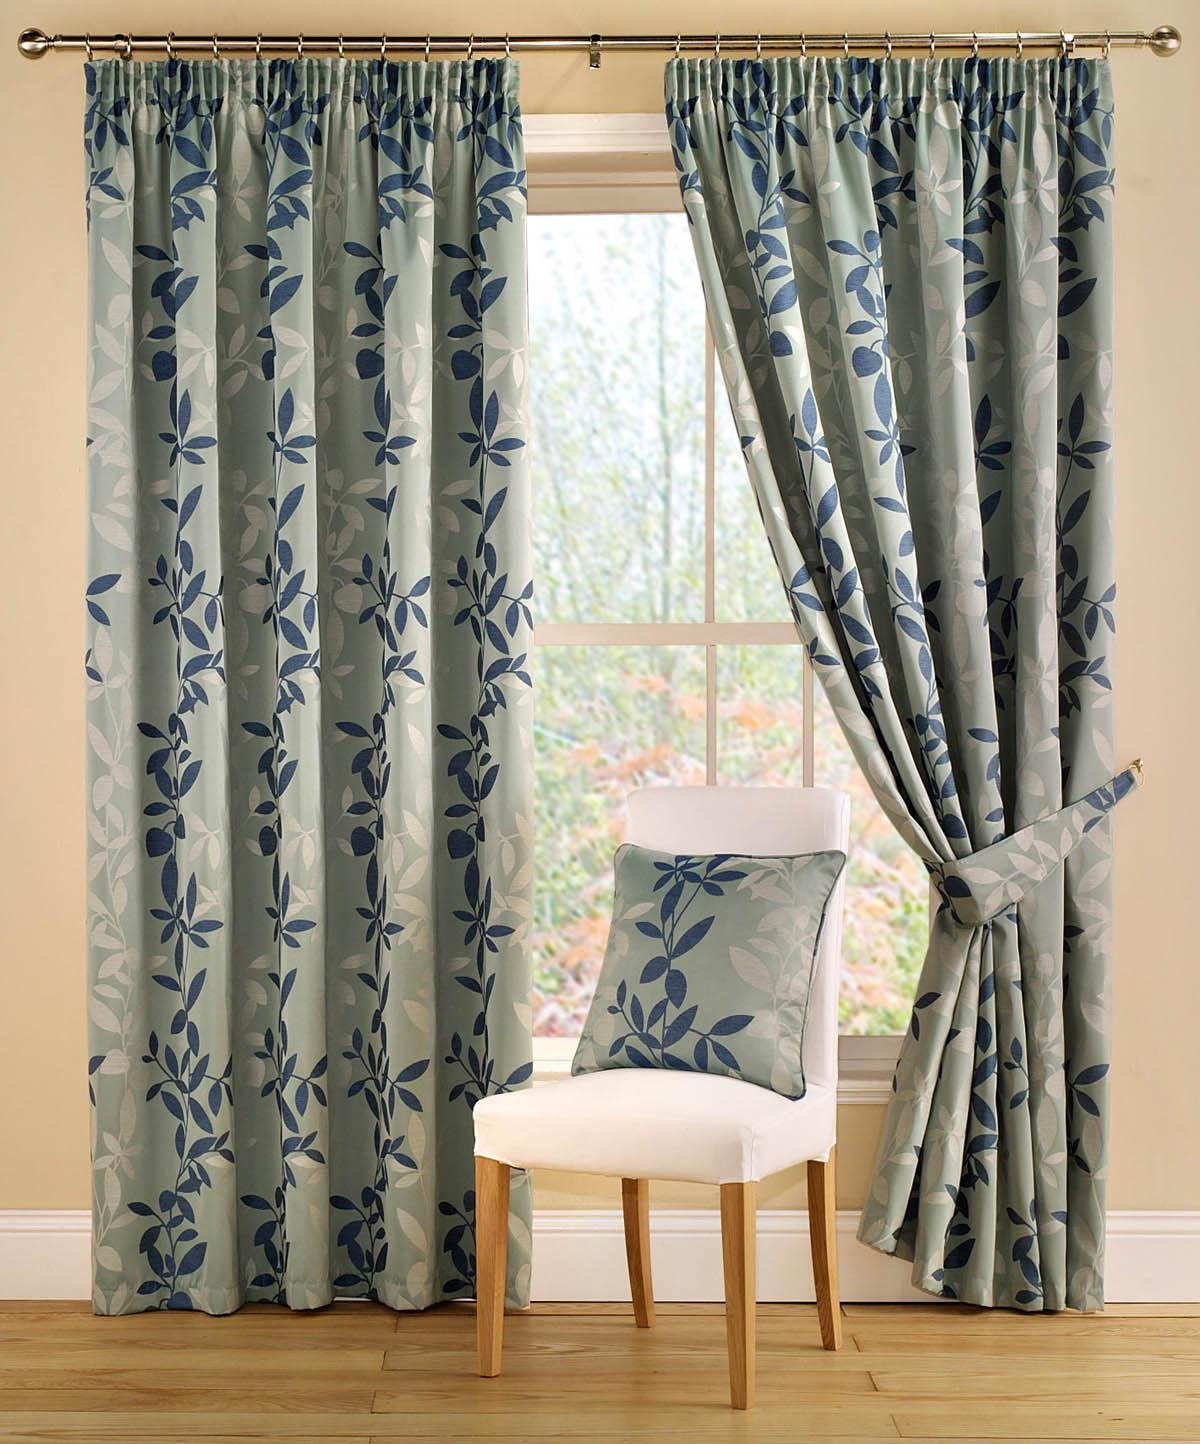 Botanica Ready Made Lined Curtains Teal Free UK Delivery Terrys Fabrics